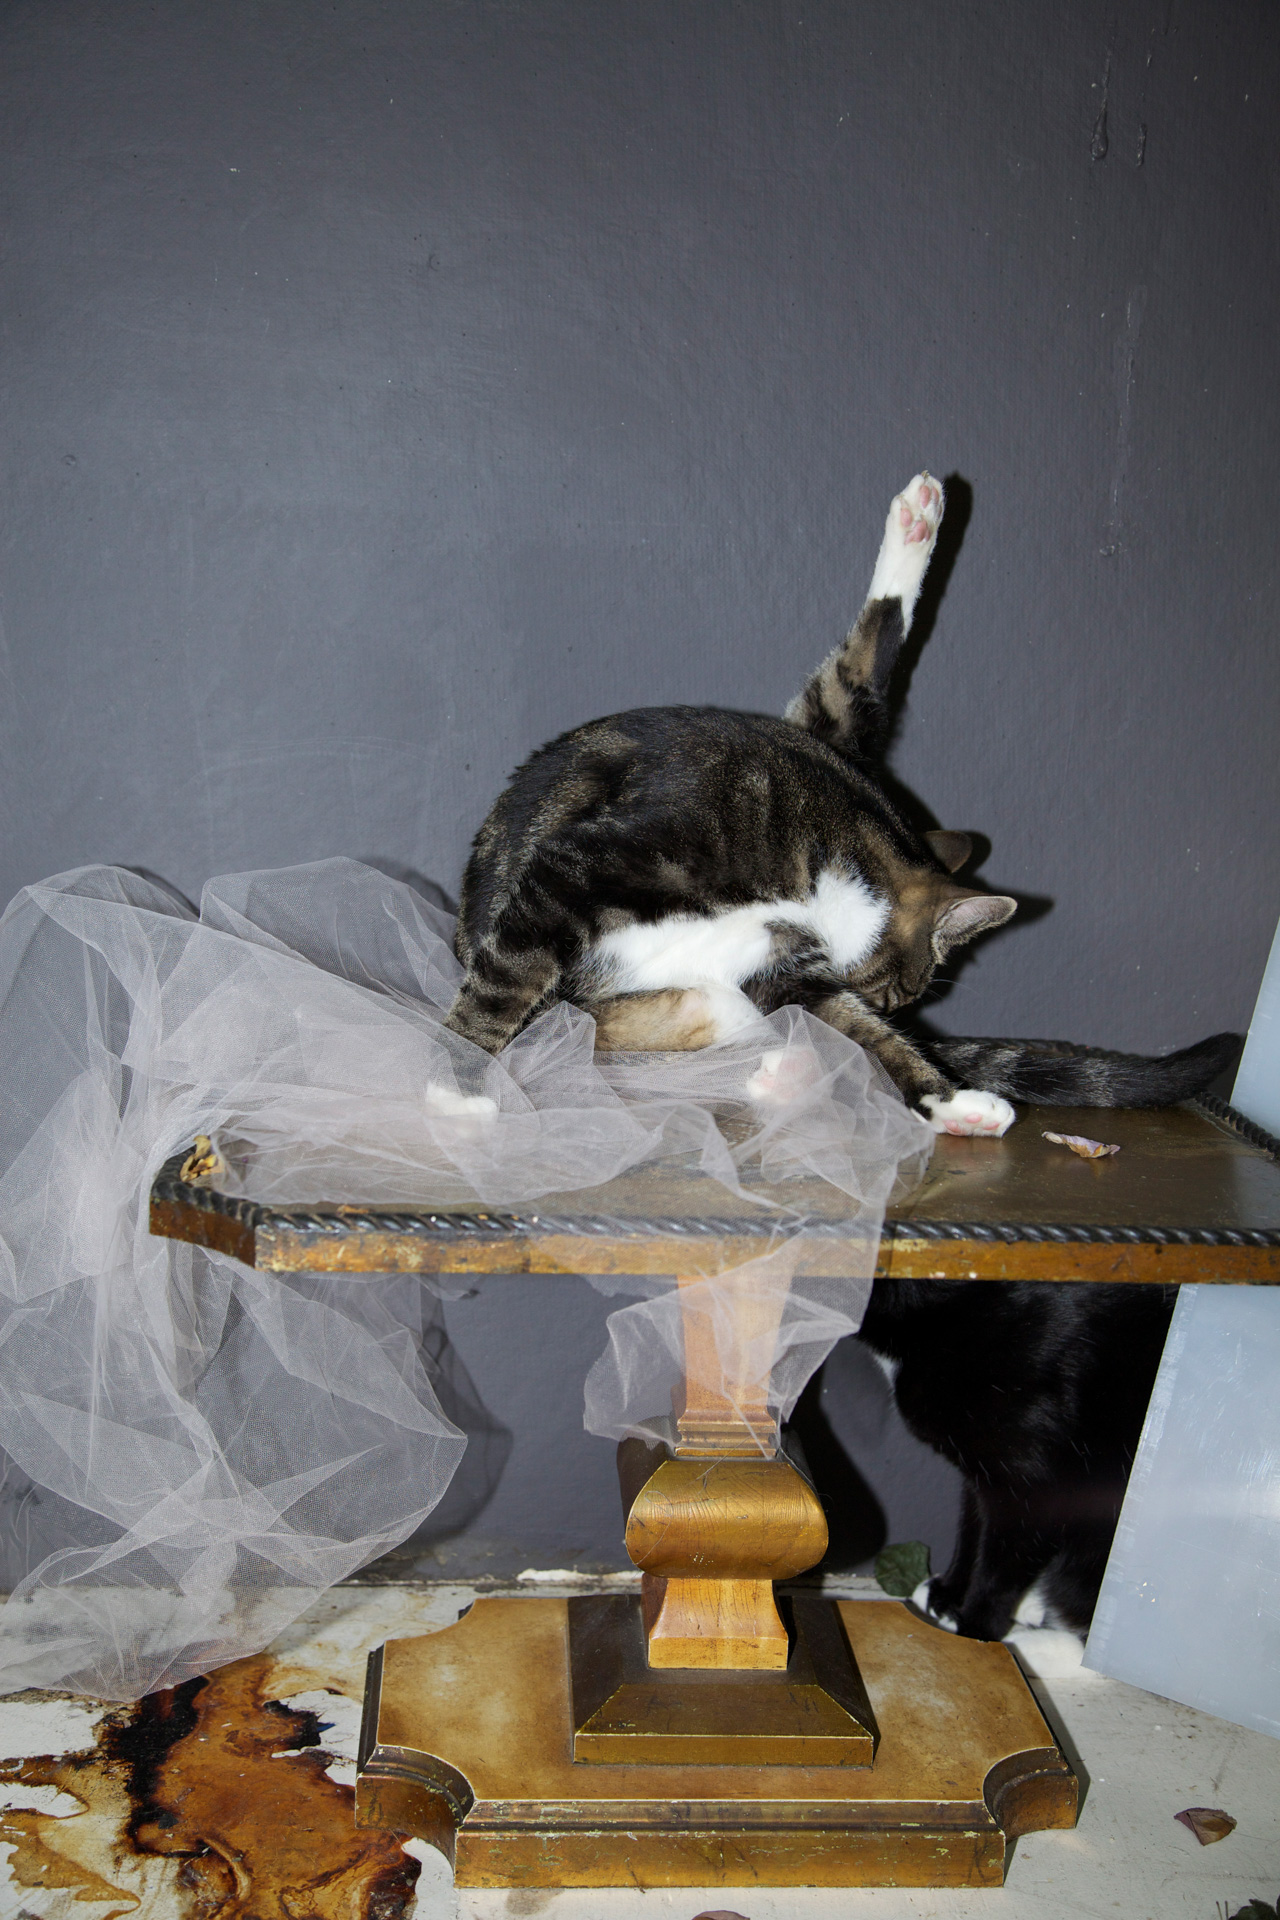 Jacob and the Tulle